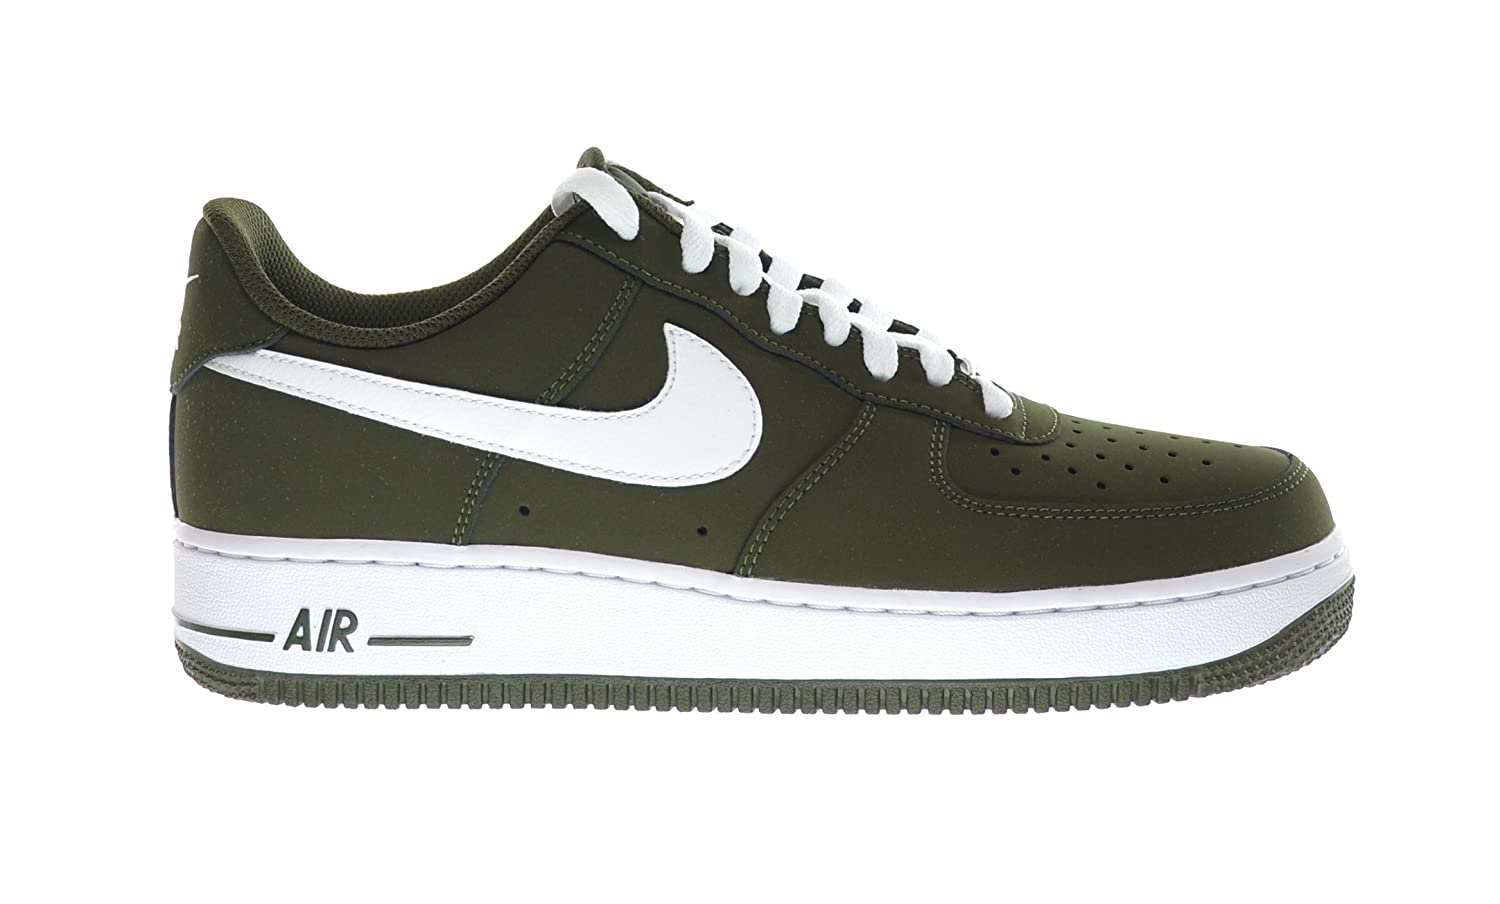 on sale 36995 d0acb Amazon.com   NIKE Air Force 1 Men s Sneakers Dark Loden Green White  488298-311 (11.5 D(M) US)   Fashion Sneakers